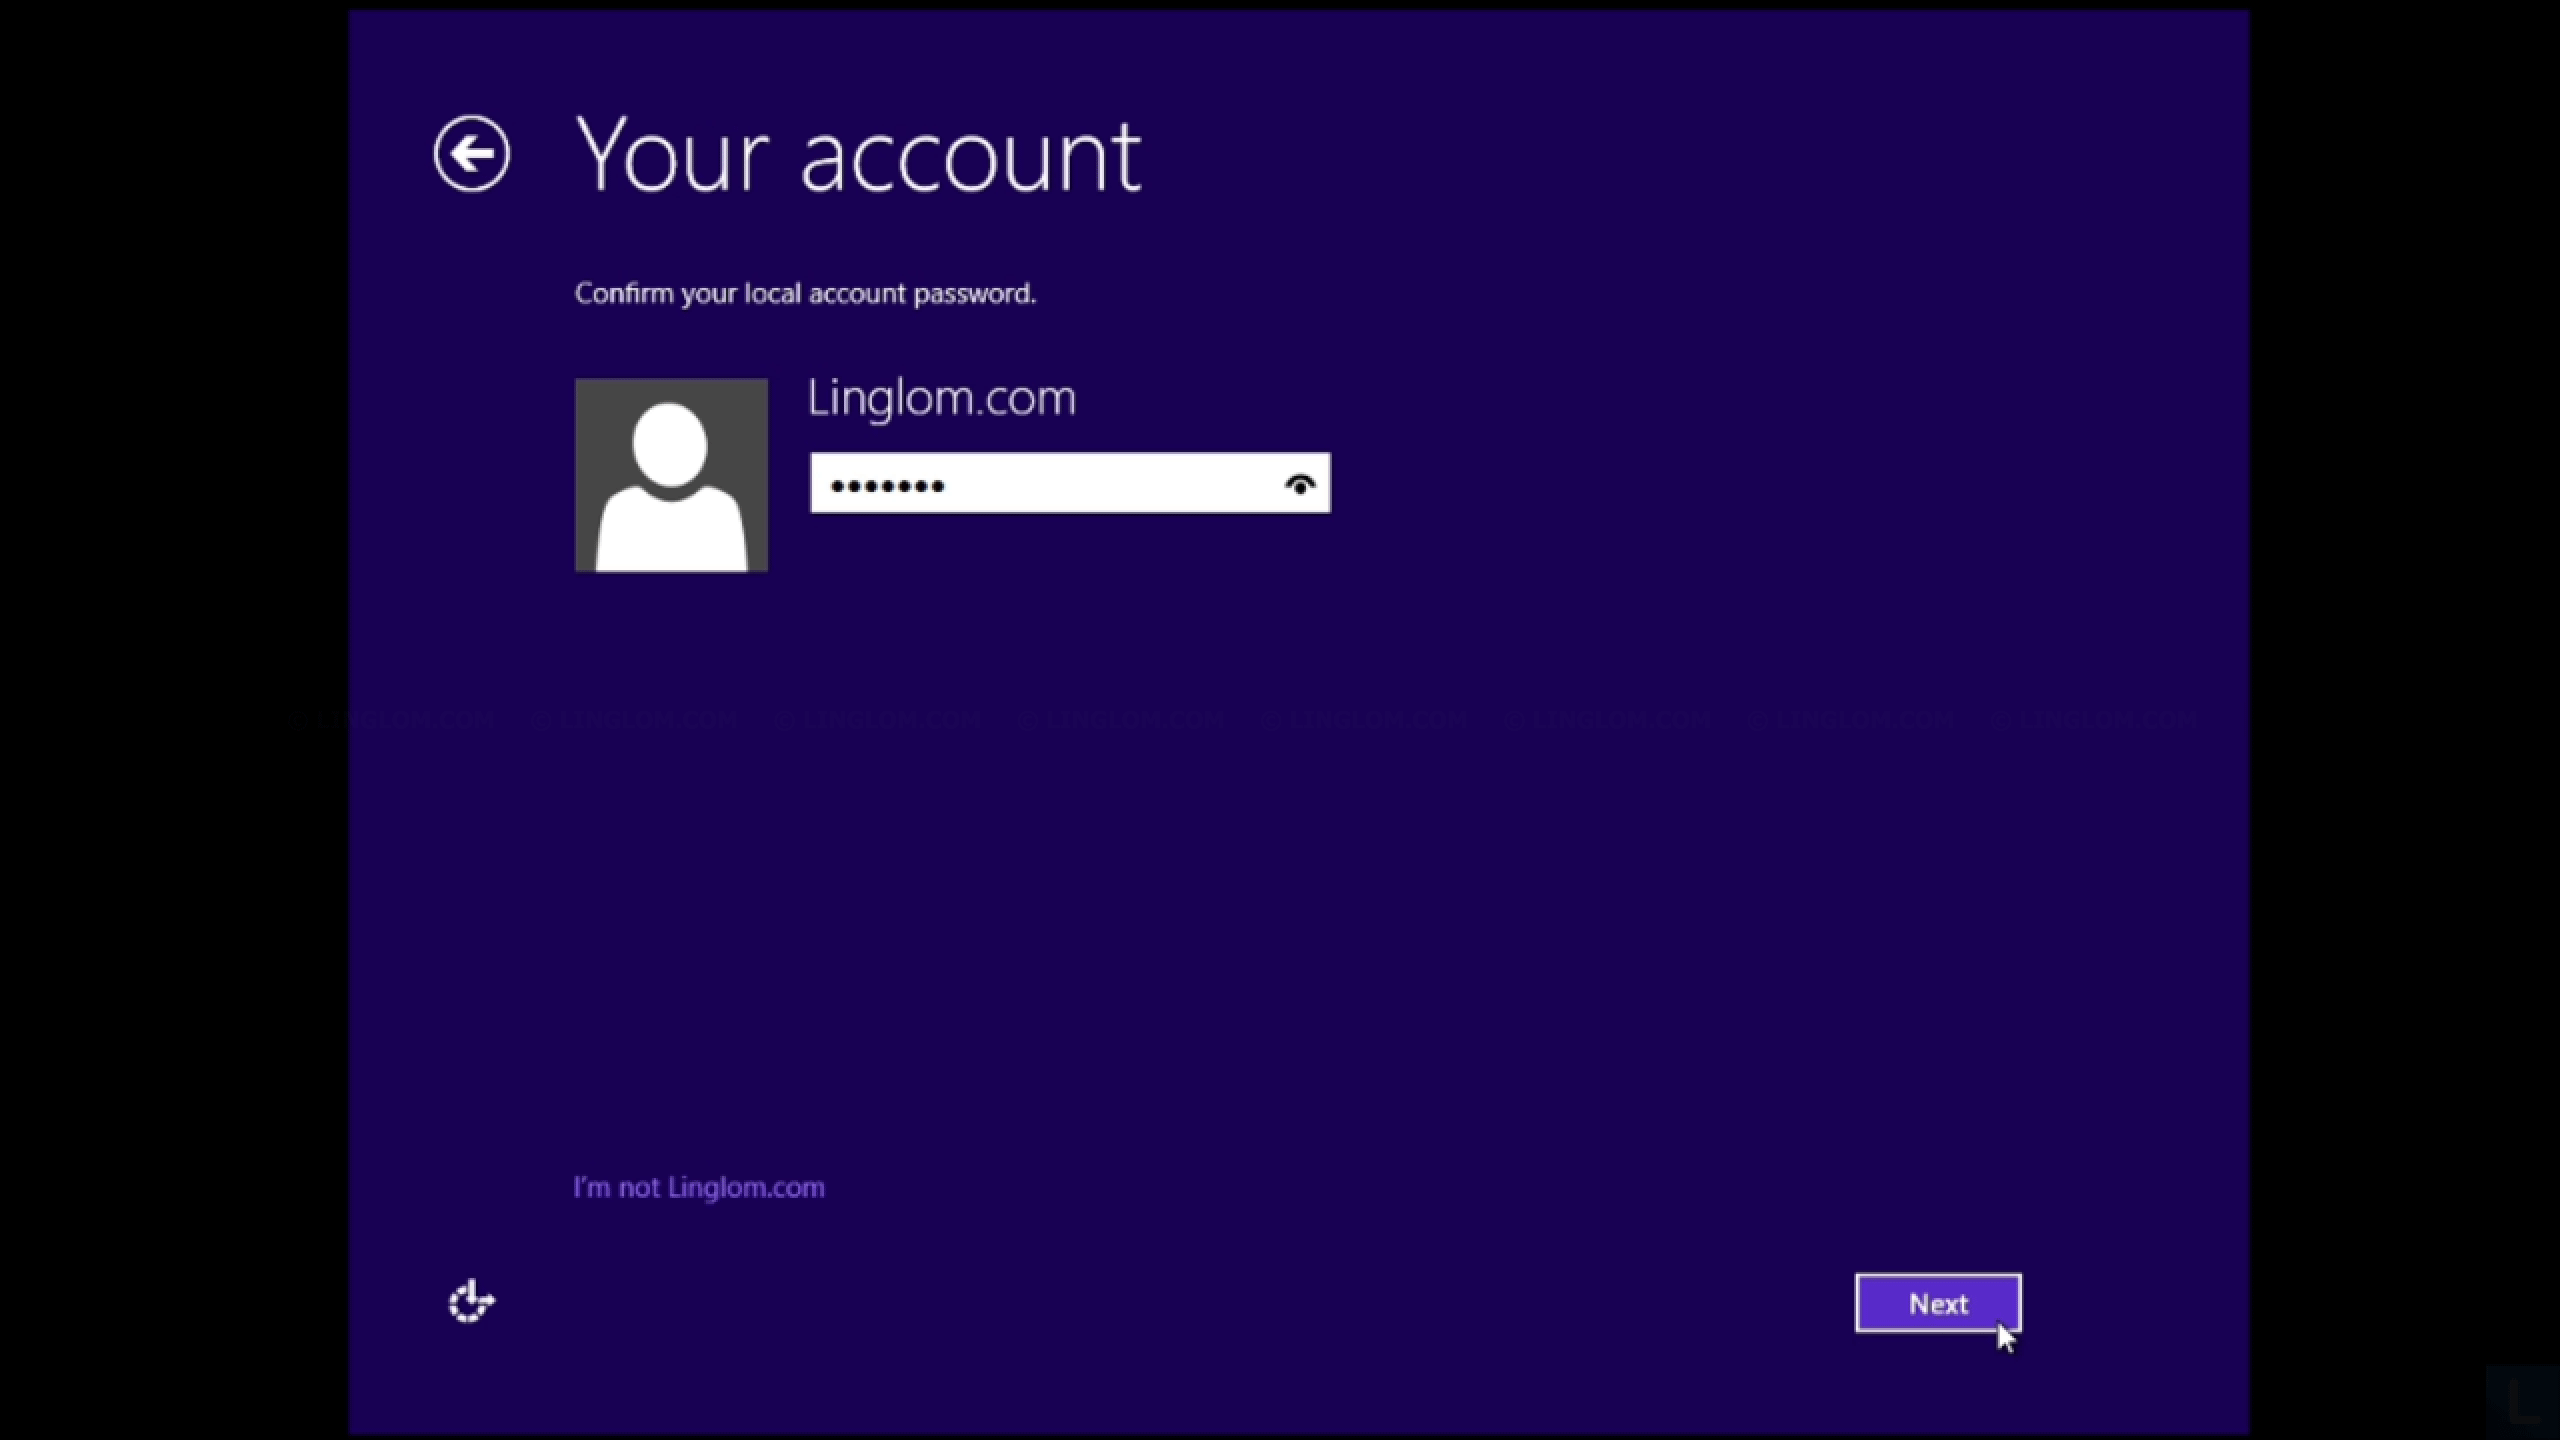 Update to Windows 8.1 - Enter account password